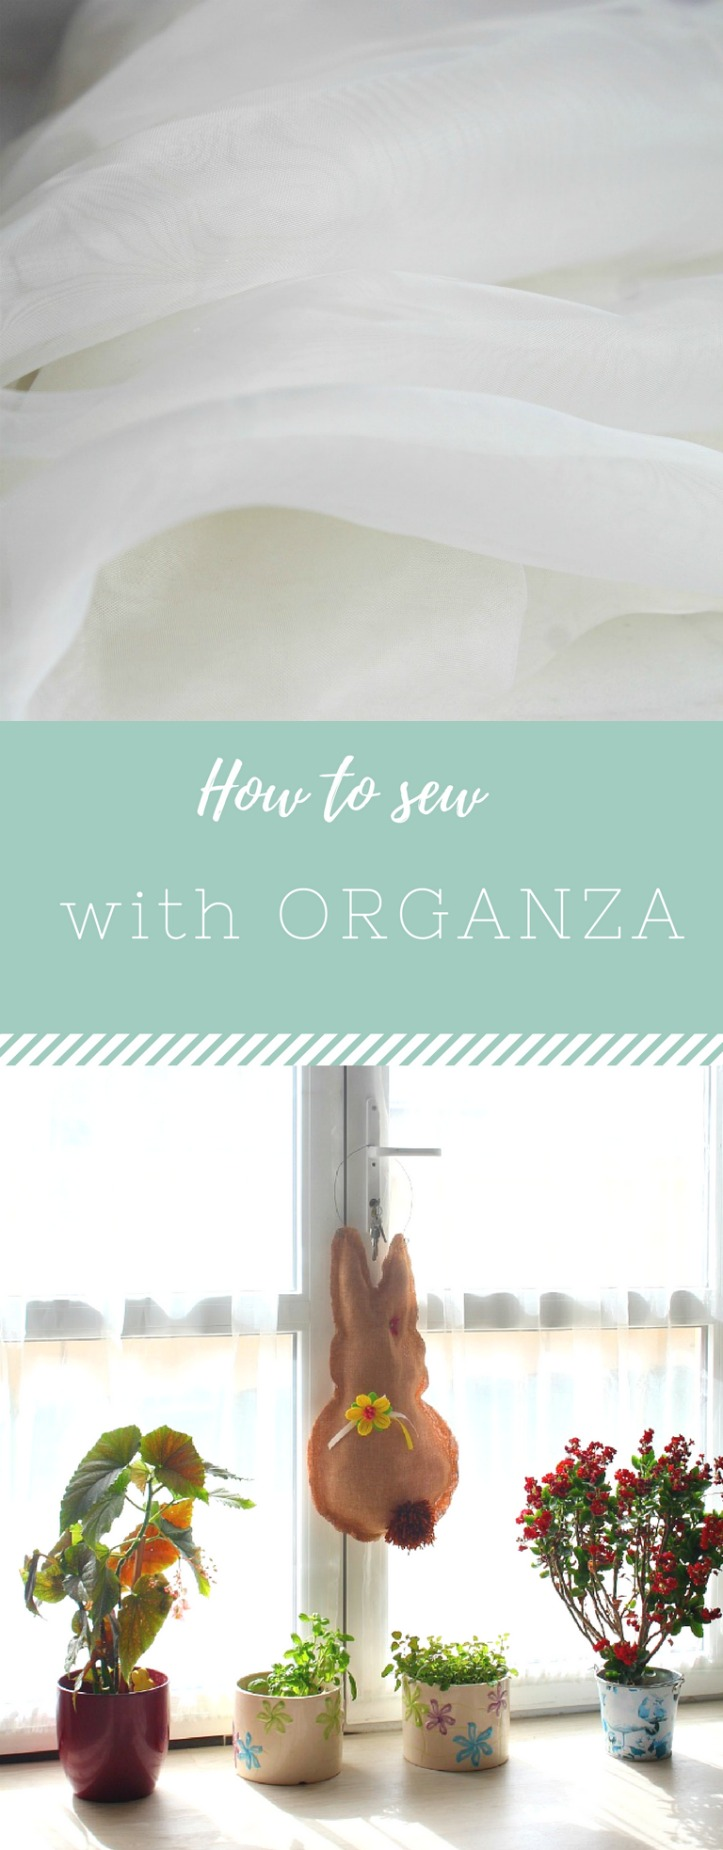 Tips For Sewing With Organza